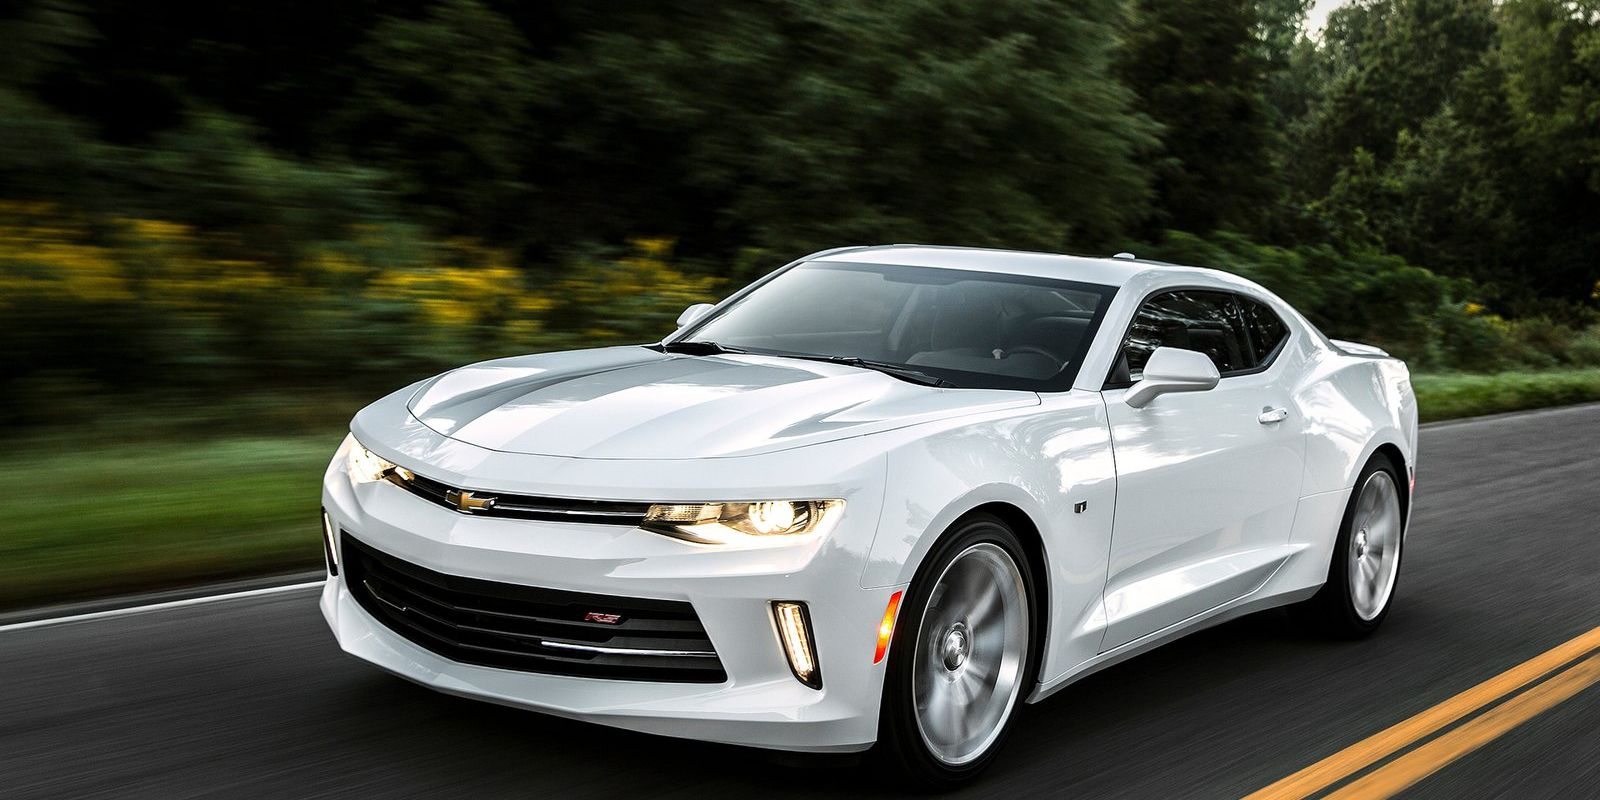 """<p>This is Chevy's first attempt at making a turbocharged four-cylinder Camaro. The 2.0-liter engine is borrowed from a Cadillac ATS and GM estimates a 0-60 sprint in under six seconds. And on highways, the <a href=""""http://www.roadandtrack.com/new-cars/news/a25749/what-you-need-to-know-about-the-new-2016-chevy-camaro/"""">Camaro should get 30 mpg</a>. When was the last time a factory Camaro could do that?</p>"""